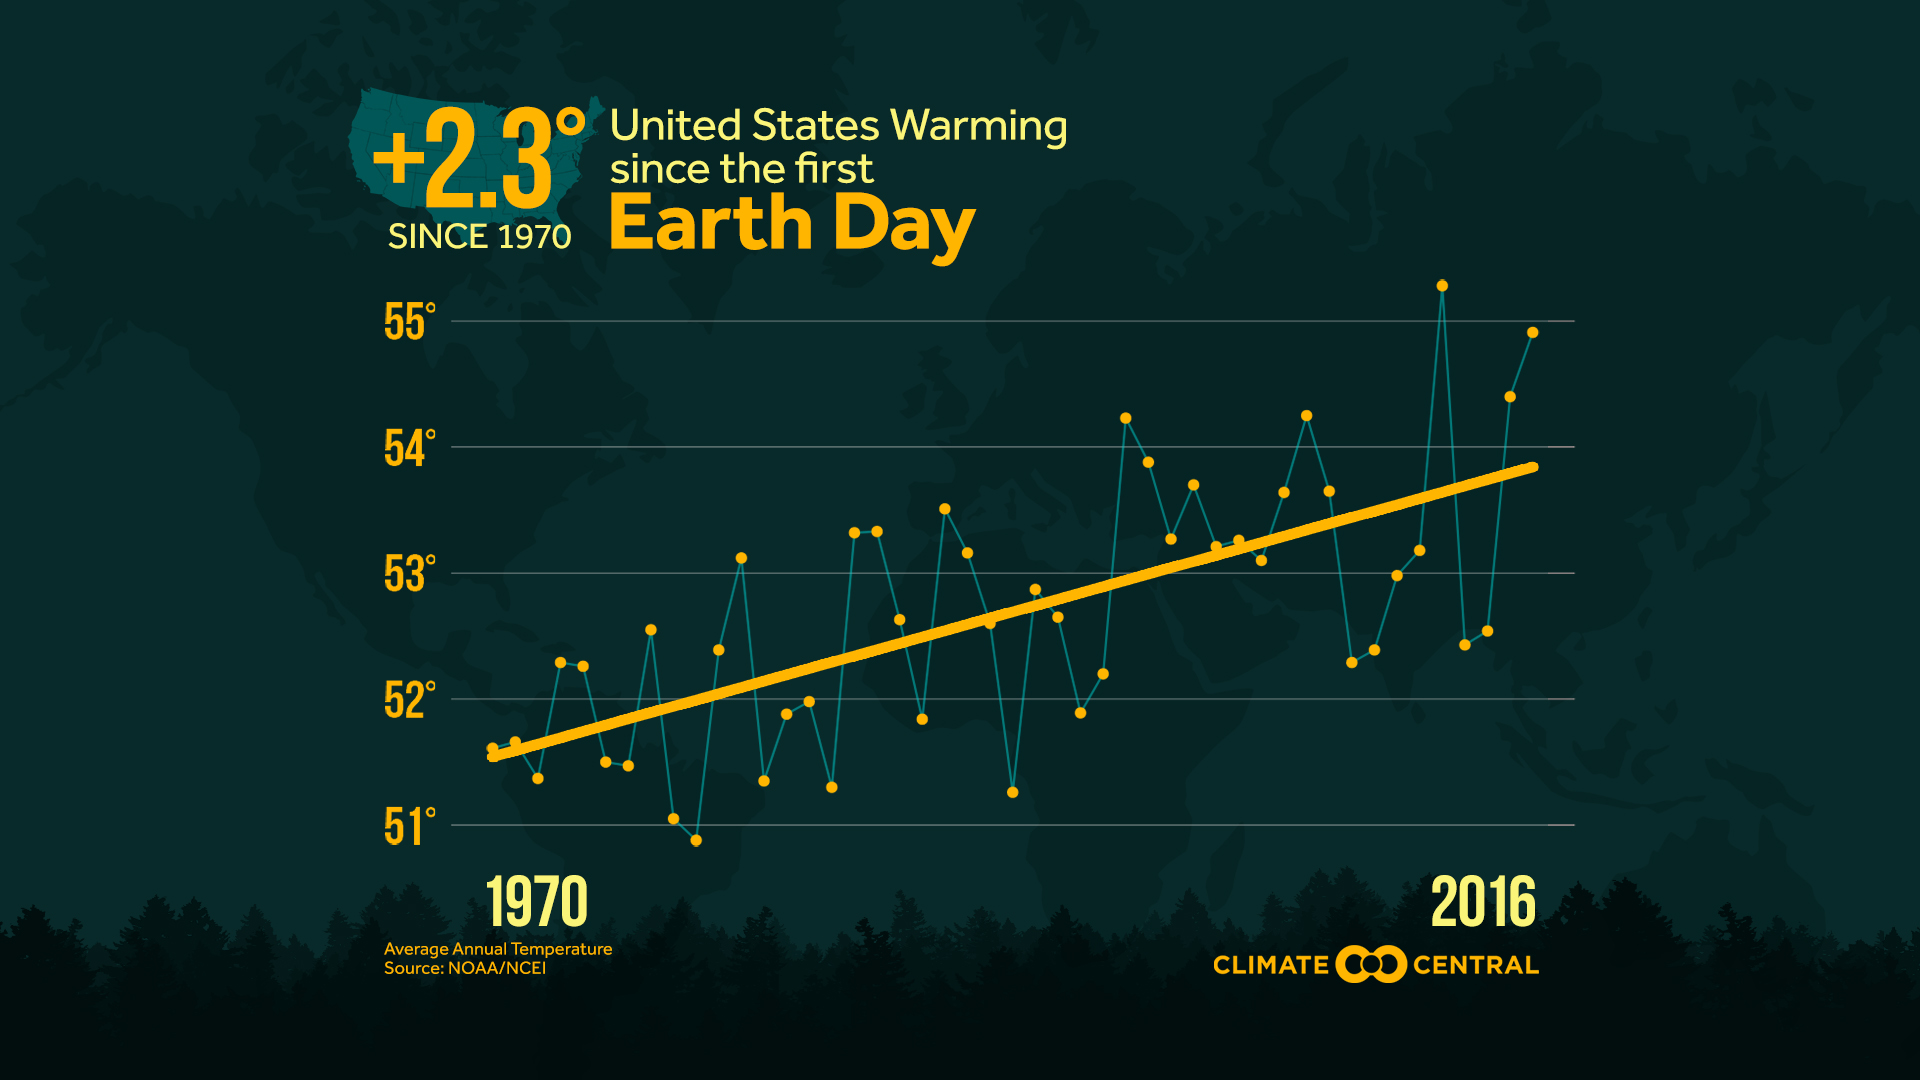 us warming since the first earth day climate central